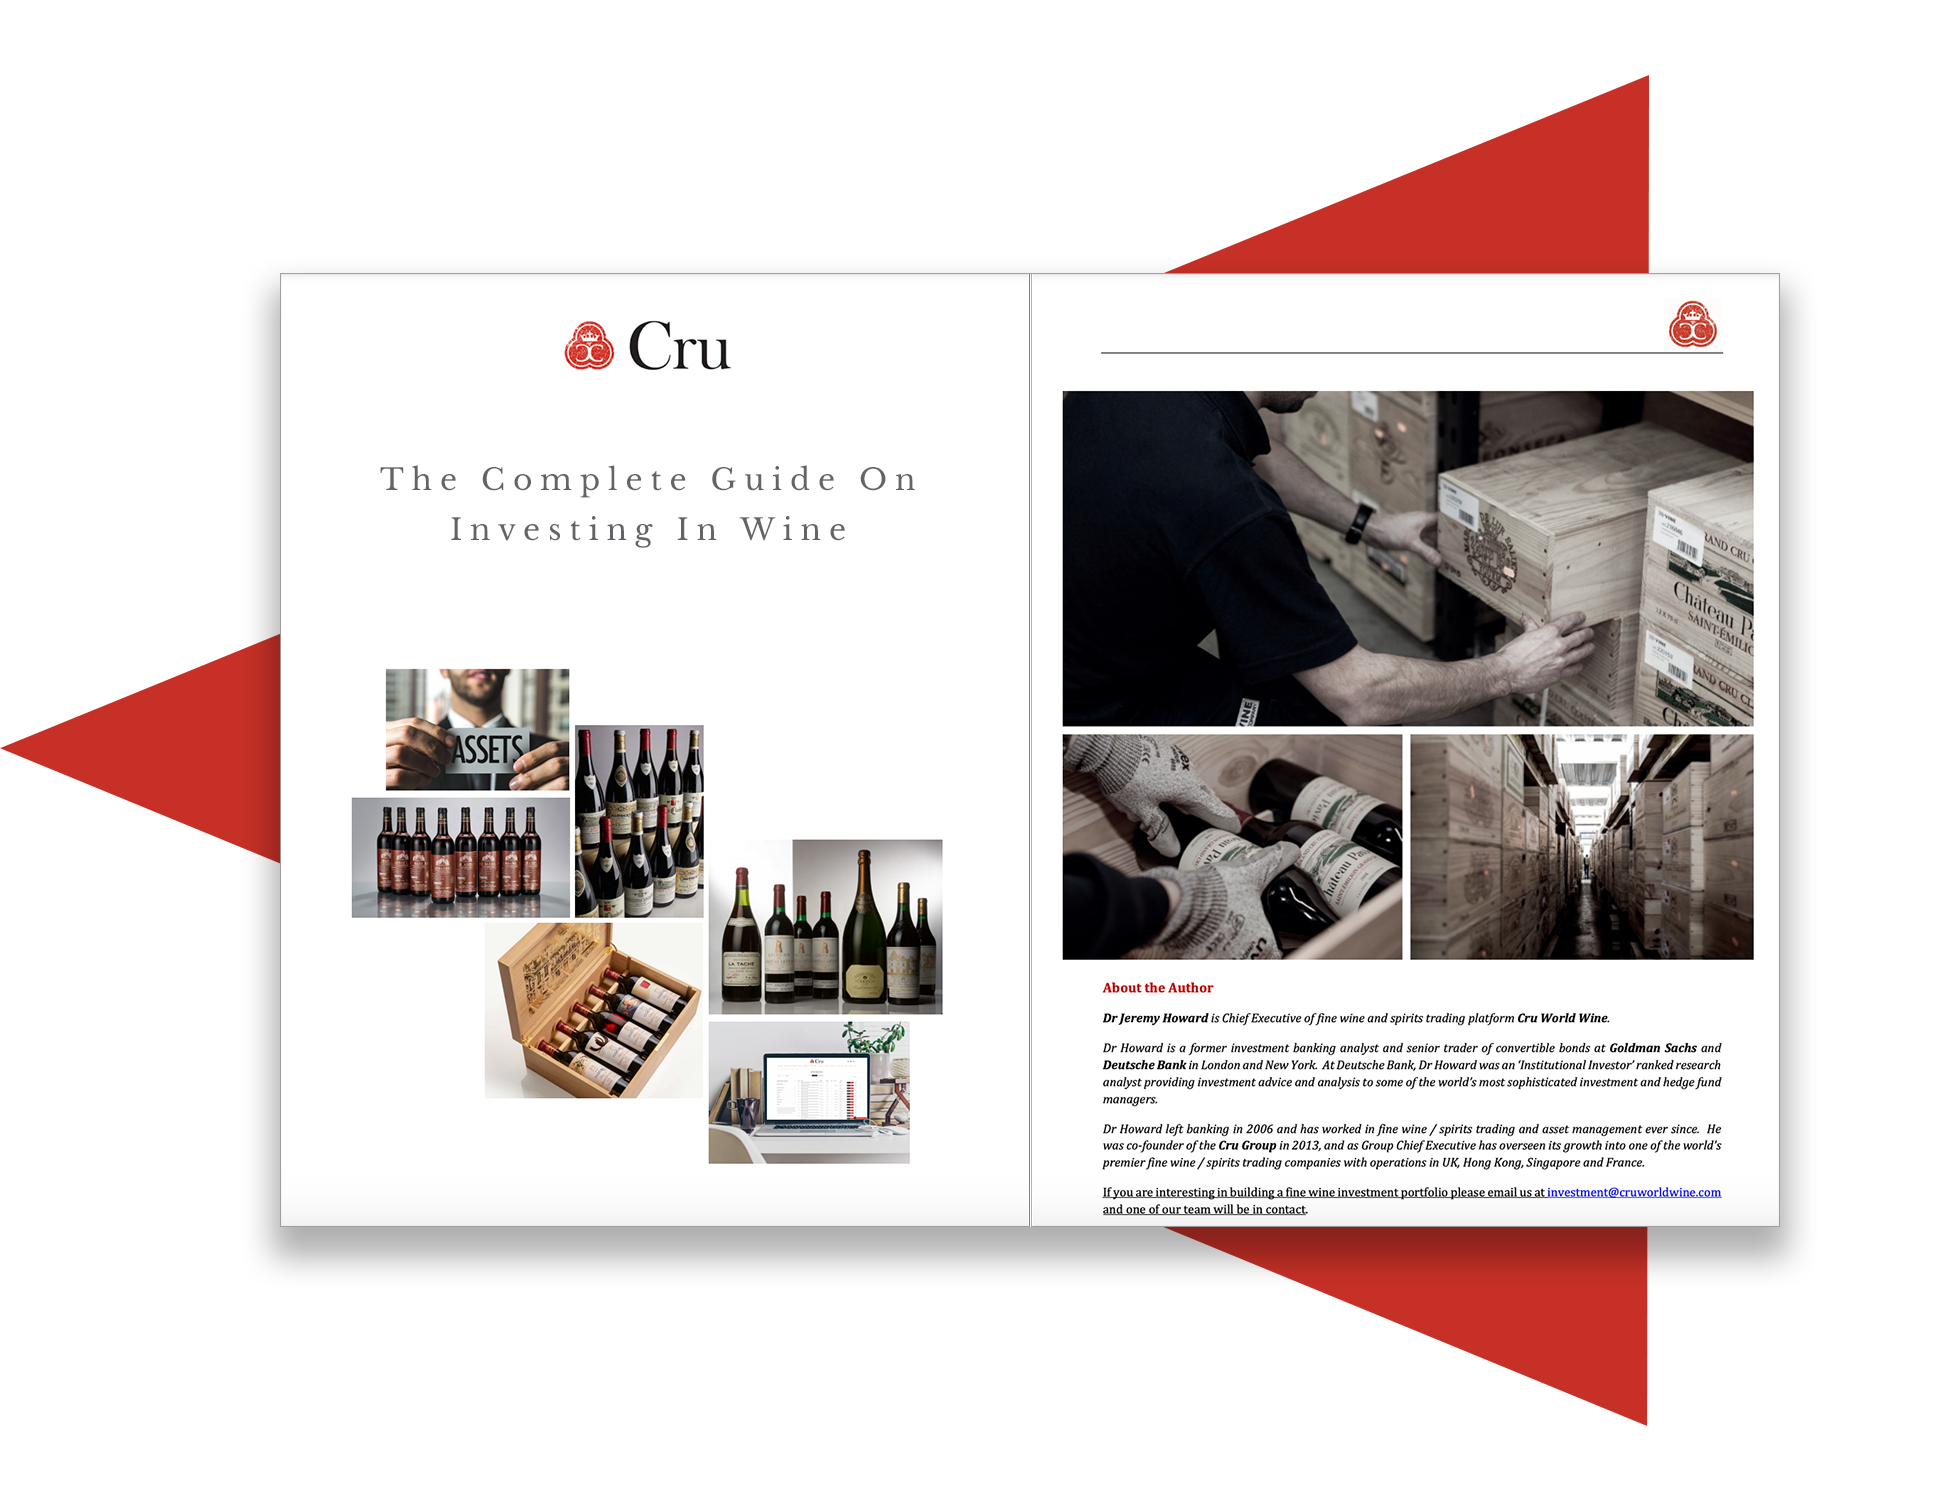 Cru's Complete and Conclusive Free Fine Wine Investment Guide front page